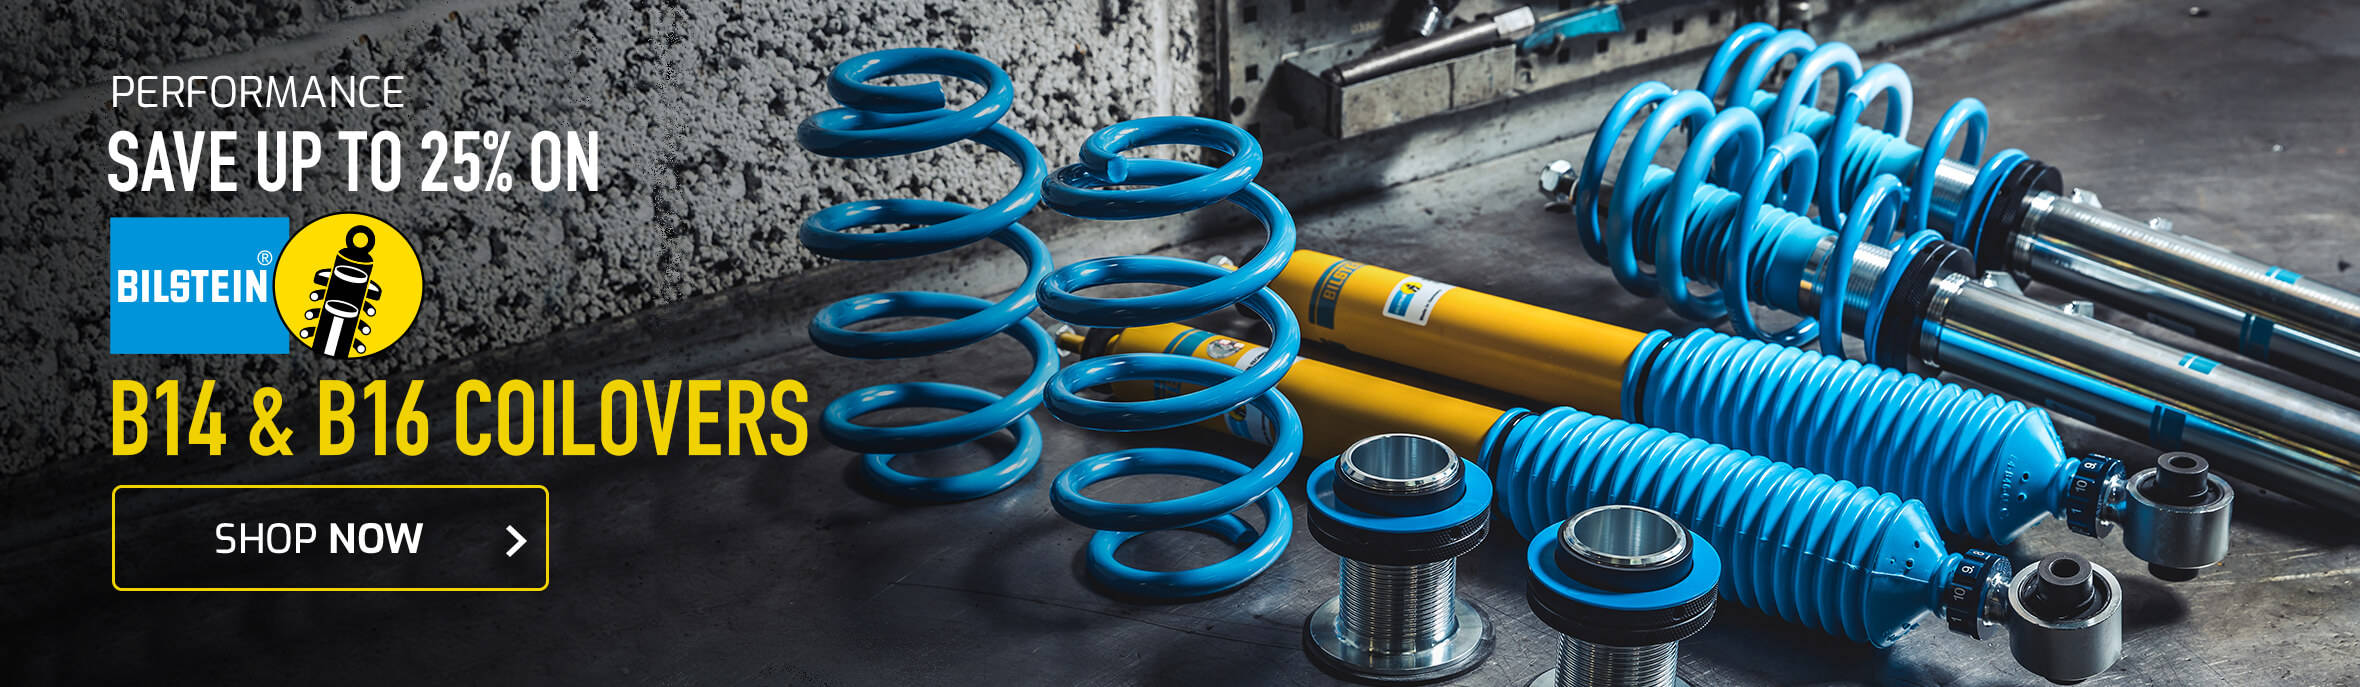 Save up to 25% on Bilstein B14 & B16 Coilovers